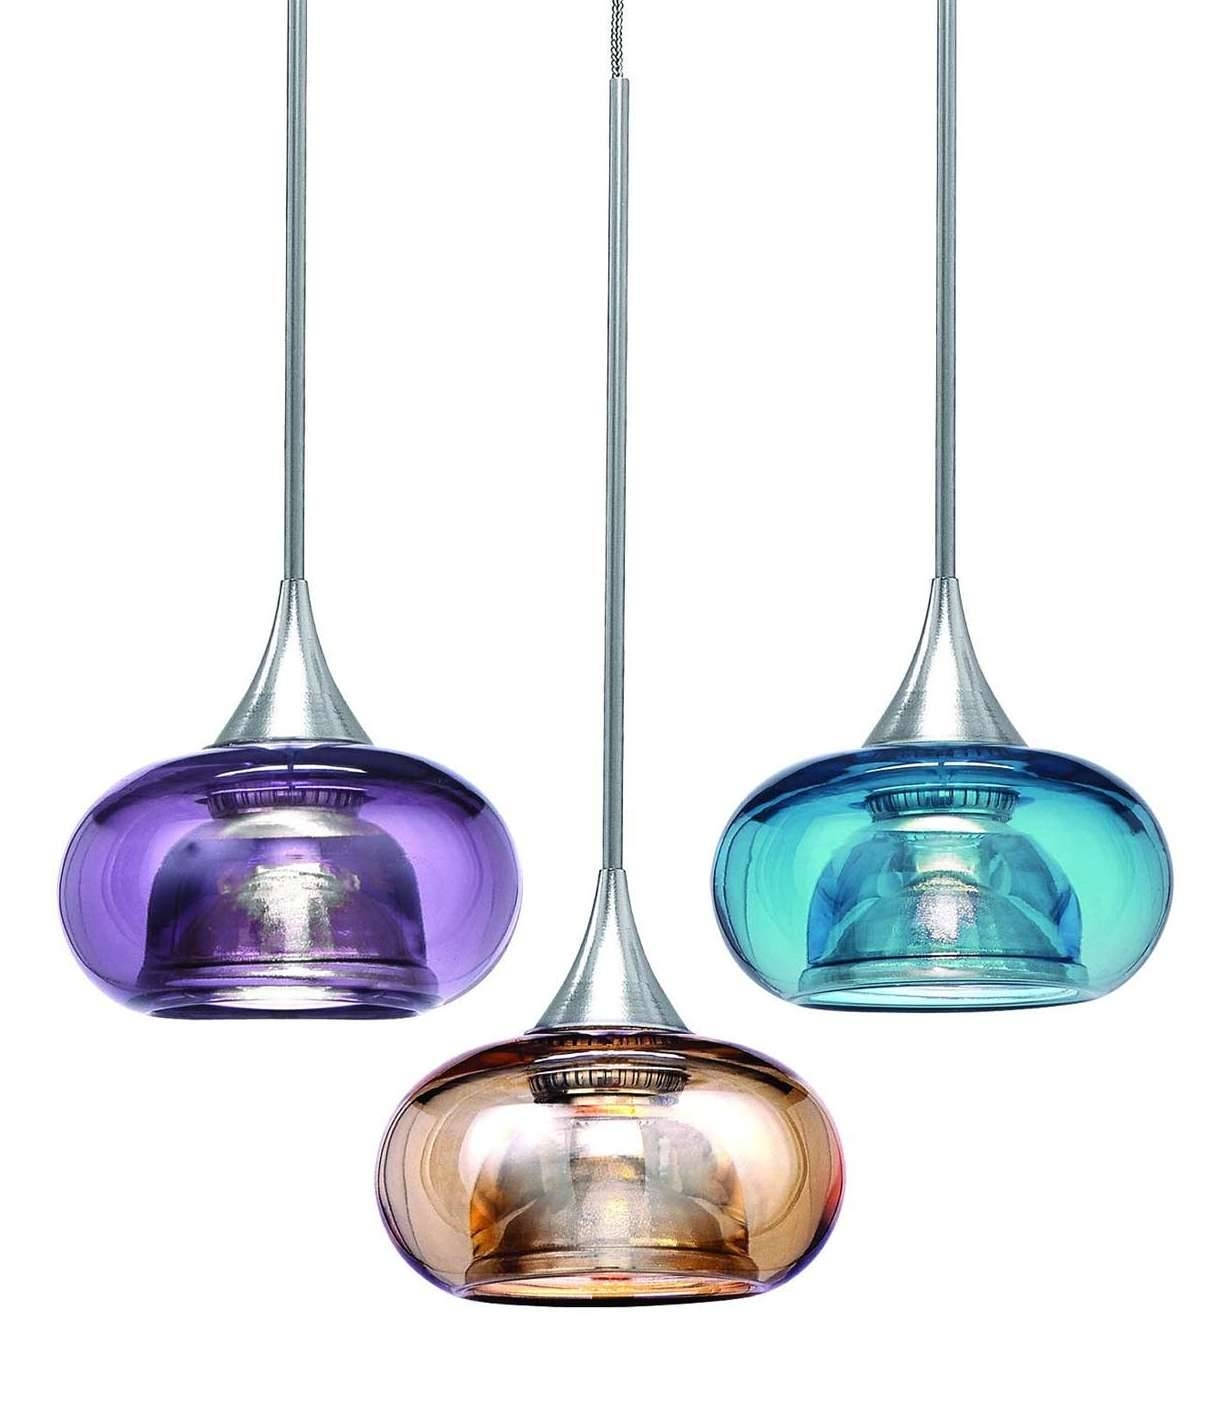 Luxury Hand Blown Glass Pendant Lights 22 With Additional Can Within Blown Glass Australia Pendant Lights (View 3 of 15)